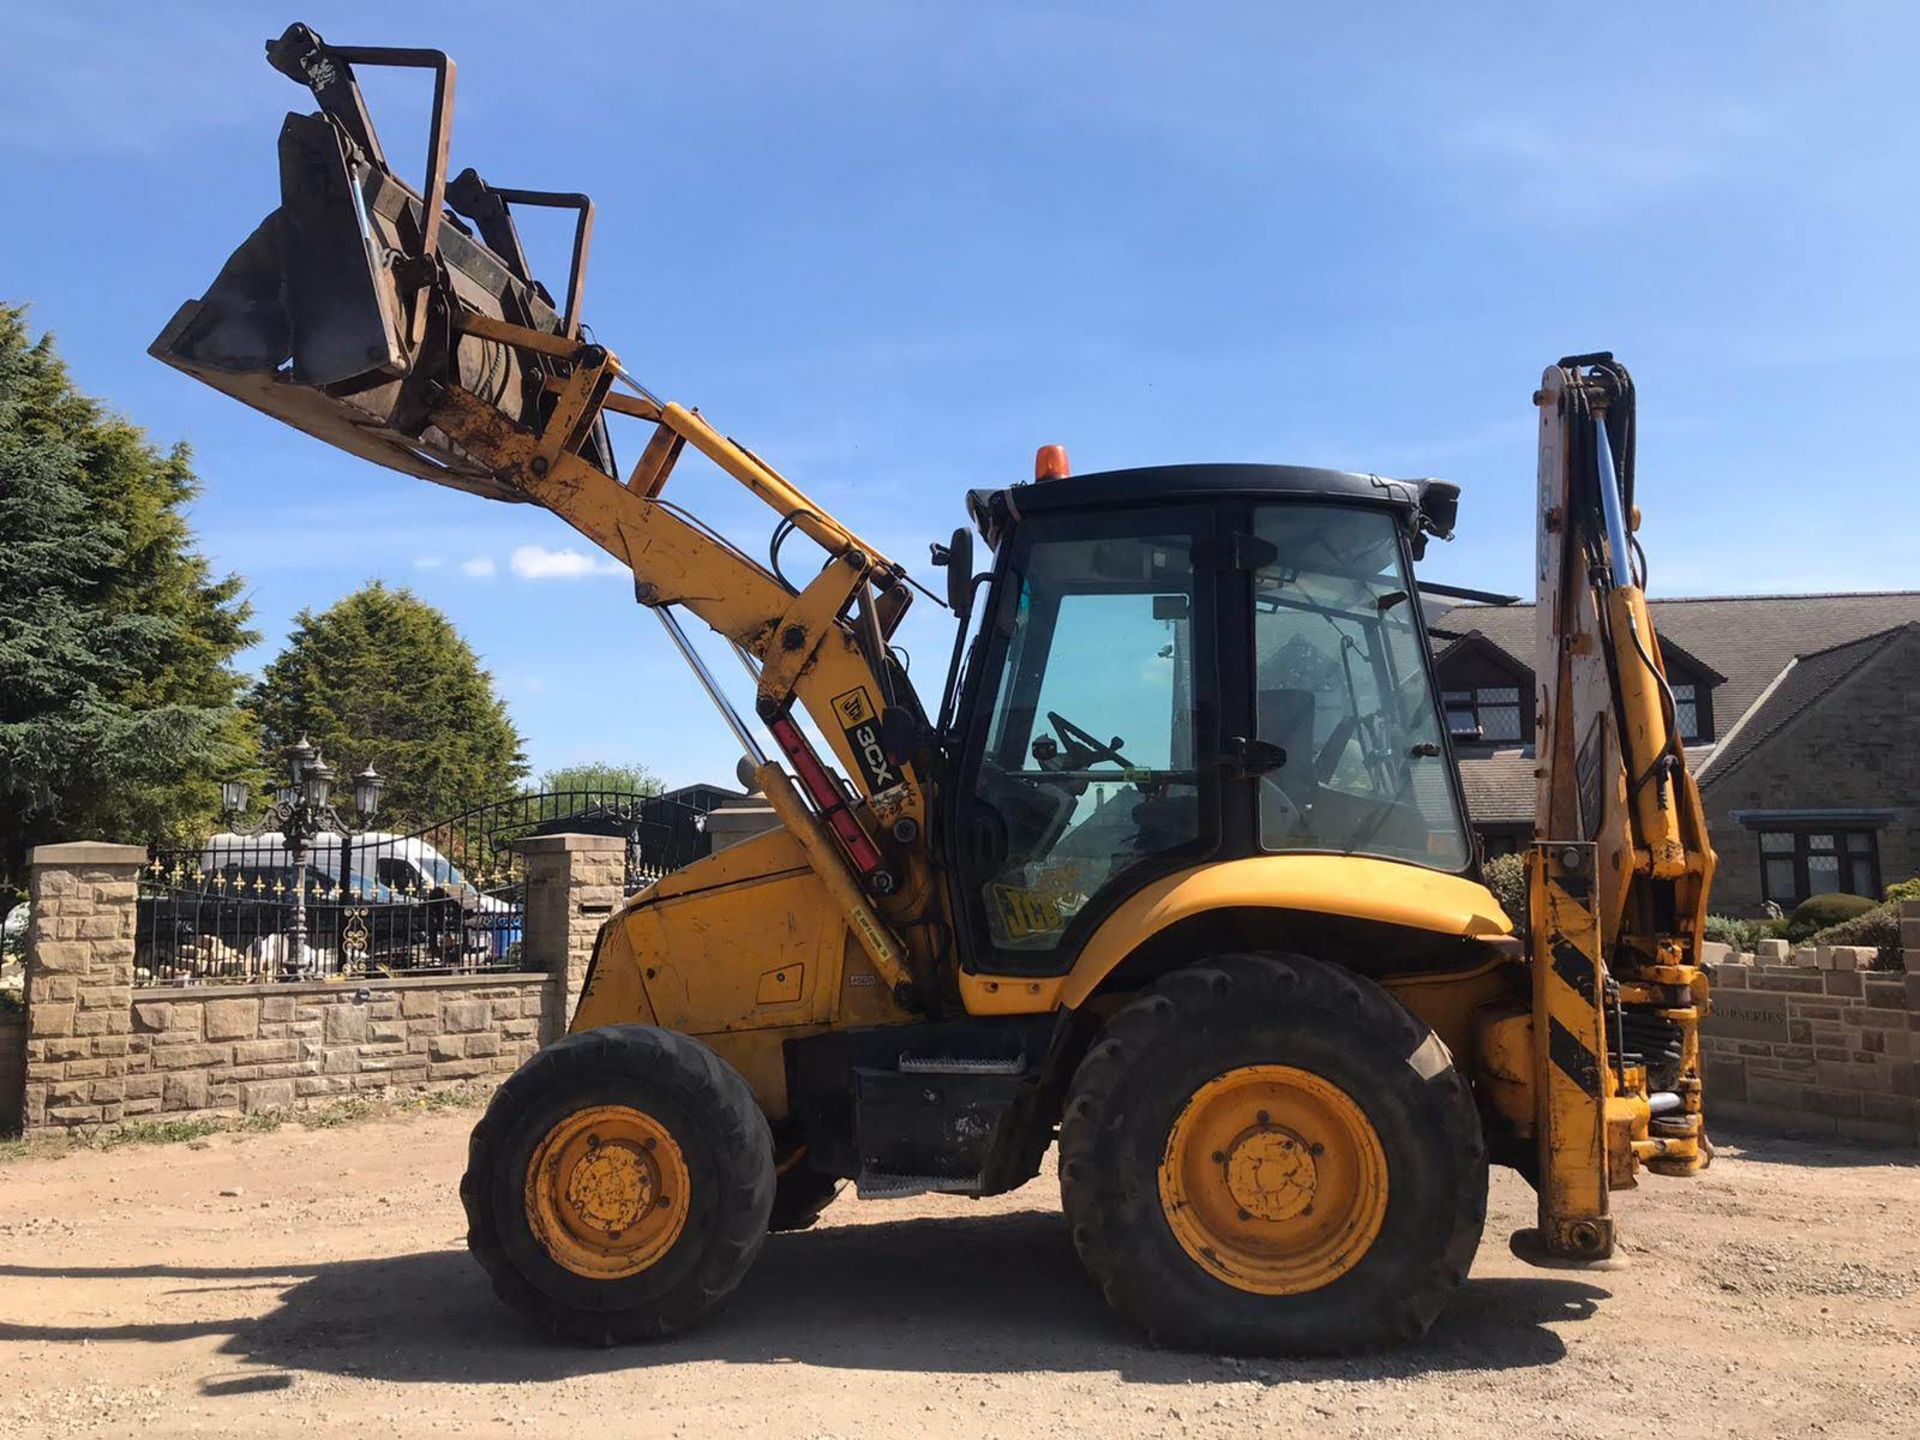 Lot 43 - 2003 JCB 3CX CONTRACTOR, 4-IN-1 BUCKET, EXPANDING BOOM BACKHOE WITH QUICKHITCH, RUNS, DRIVES, DIGS